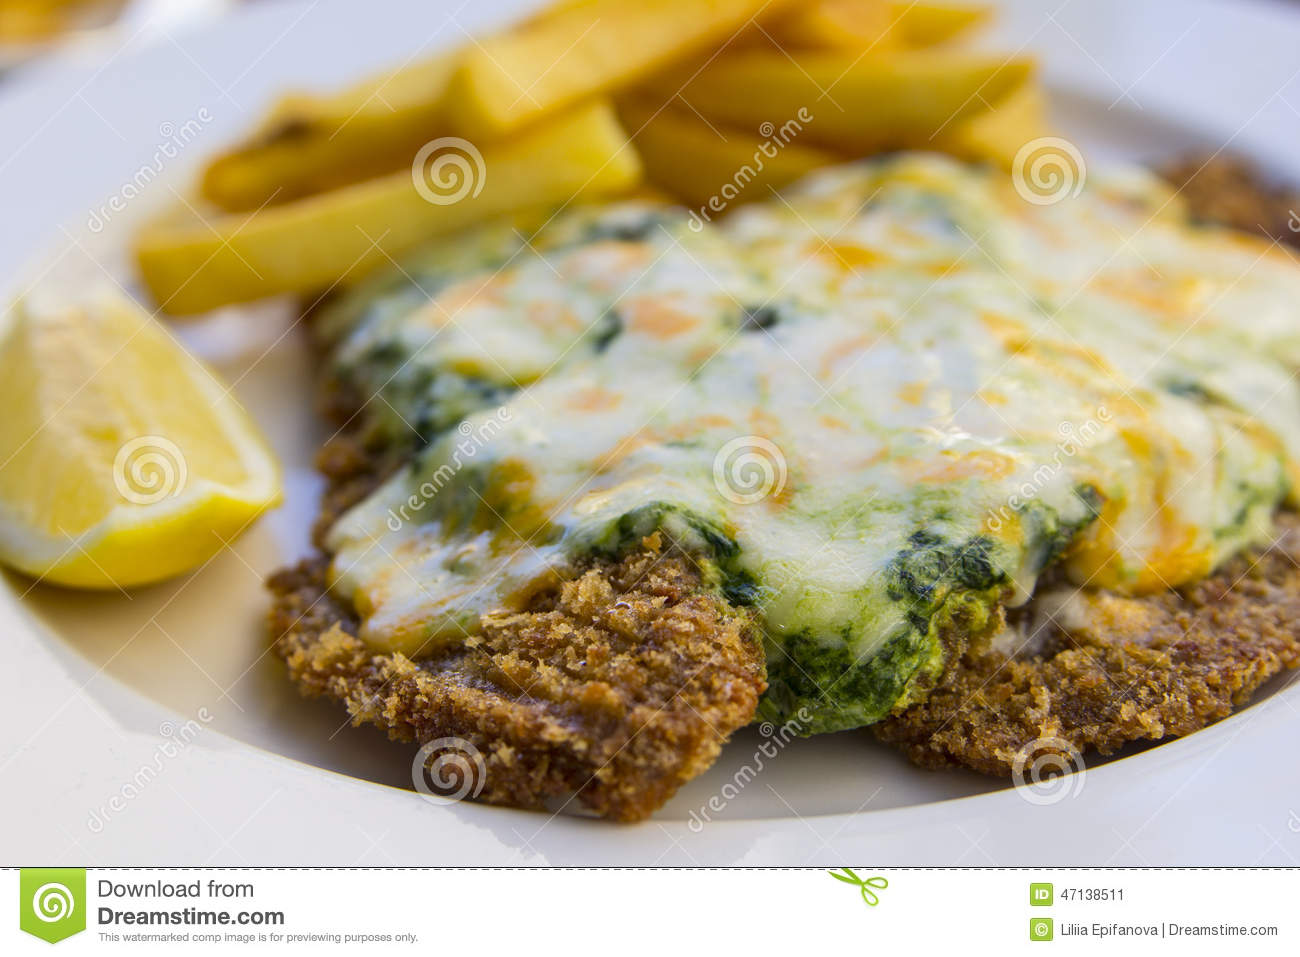 Escalope in spinazie